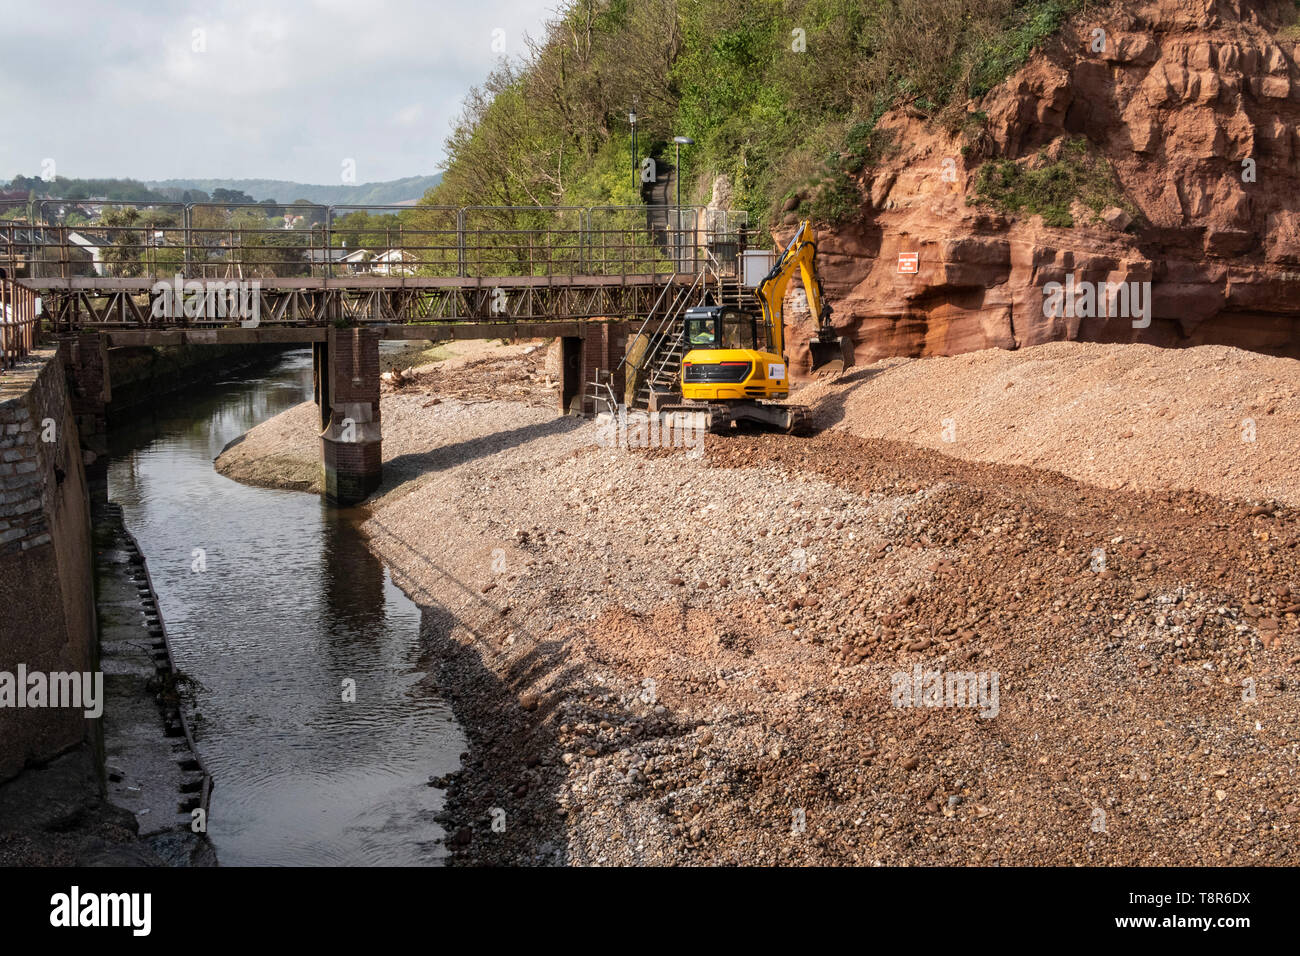 Work begins at the mouth of the river Sid, at Sidmouth, for the repkacement of the Alma Bridge, which is being moved about 100 yards further inland. Stock Photo